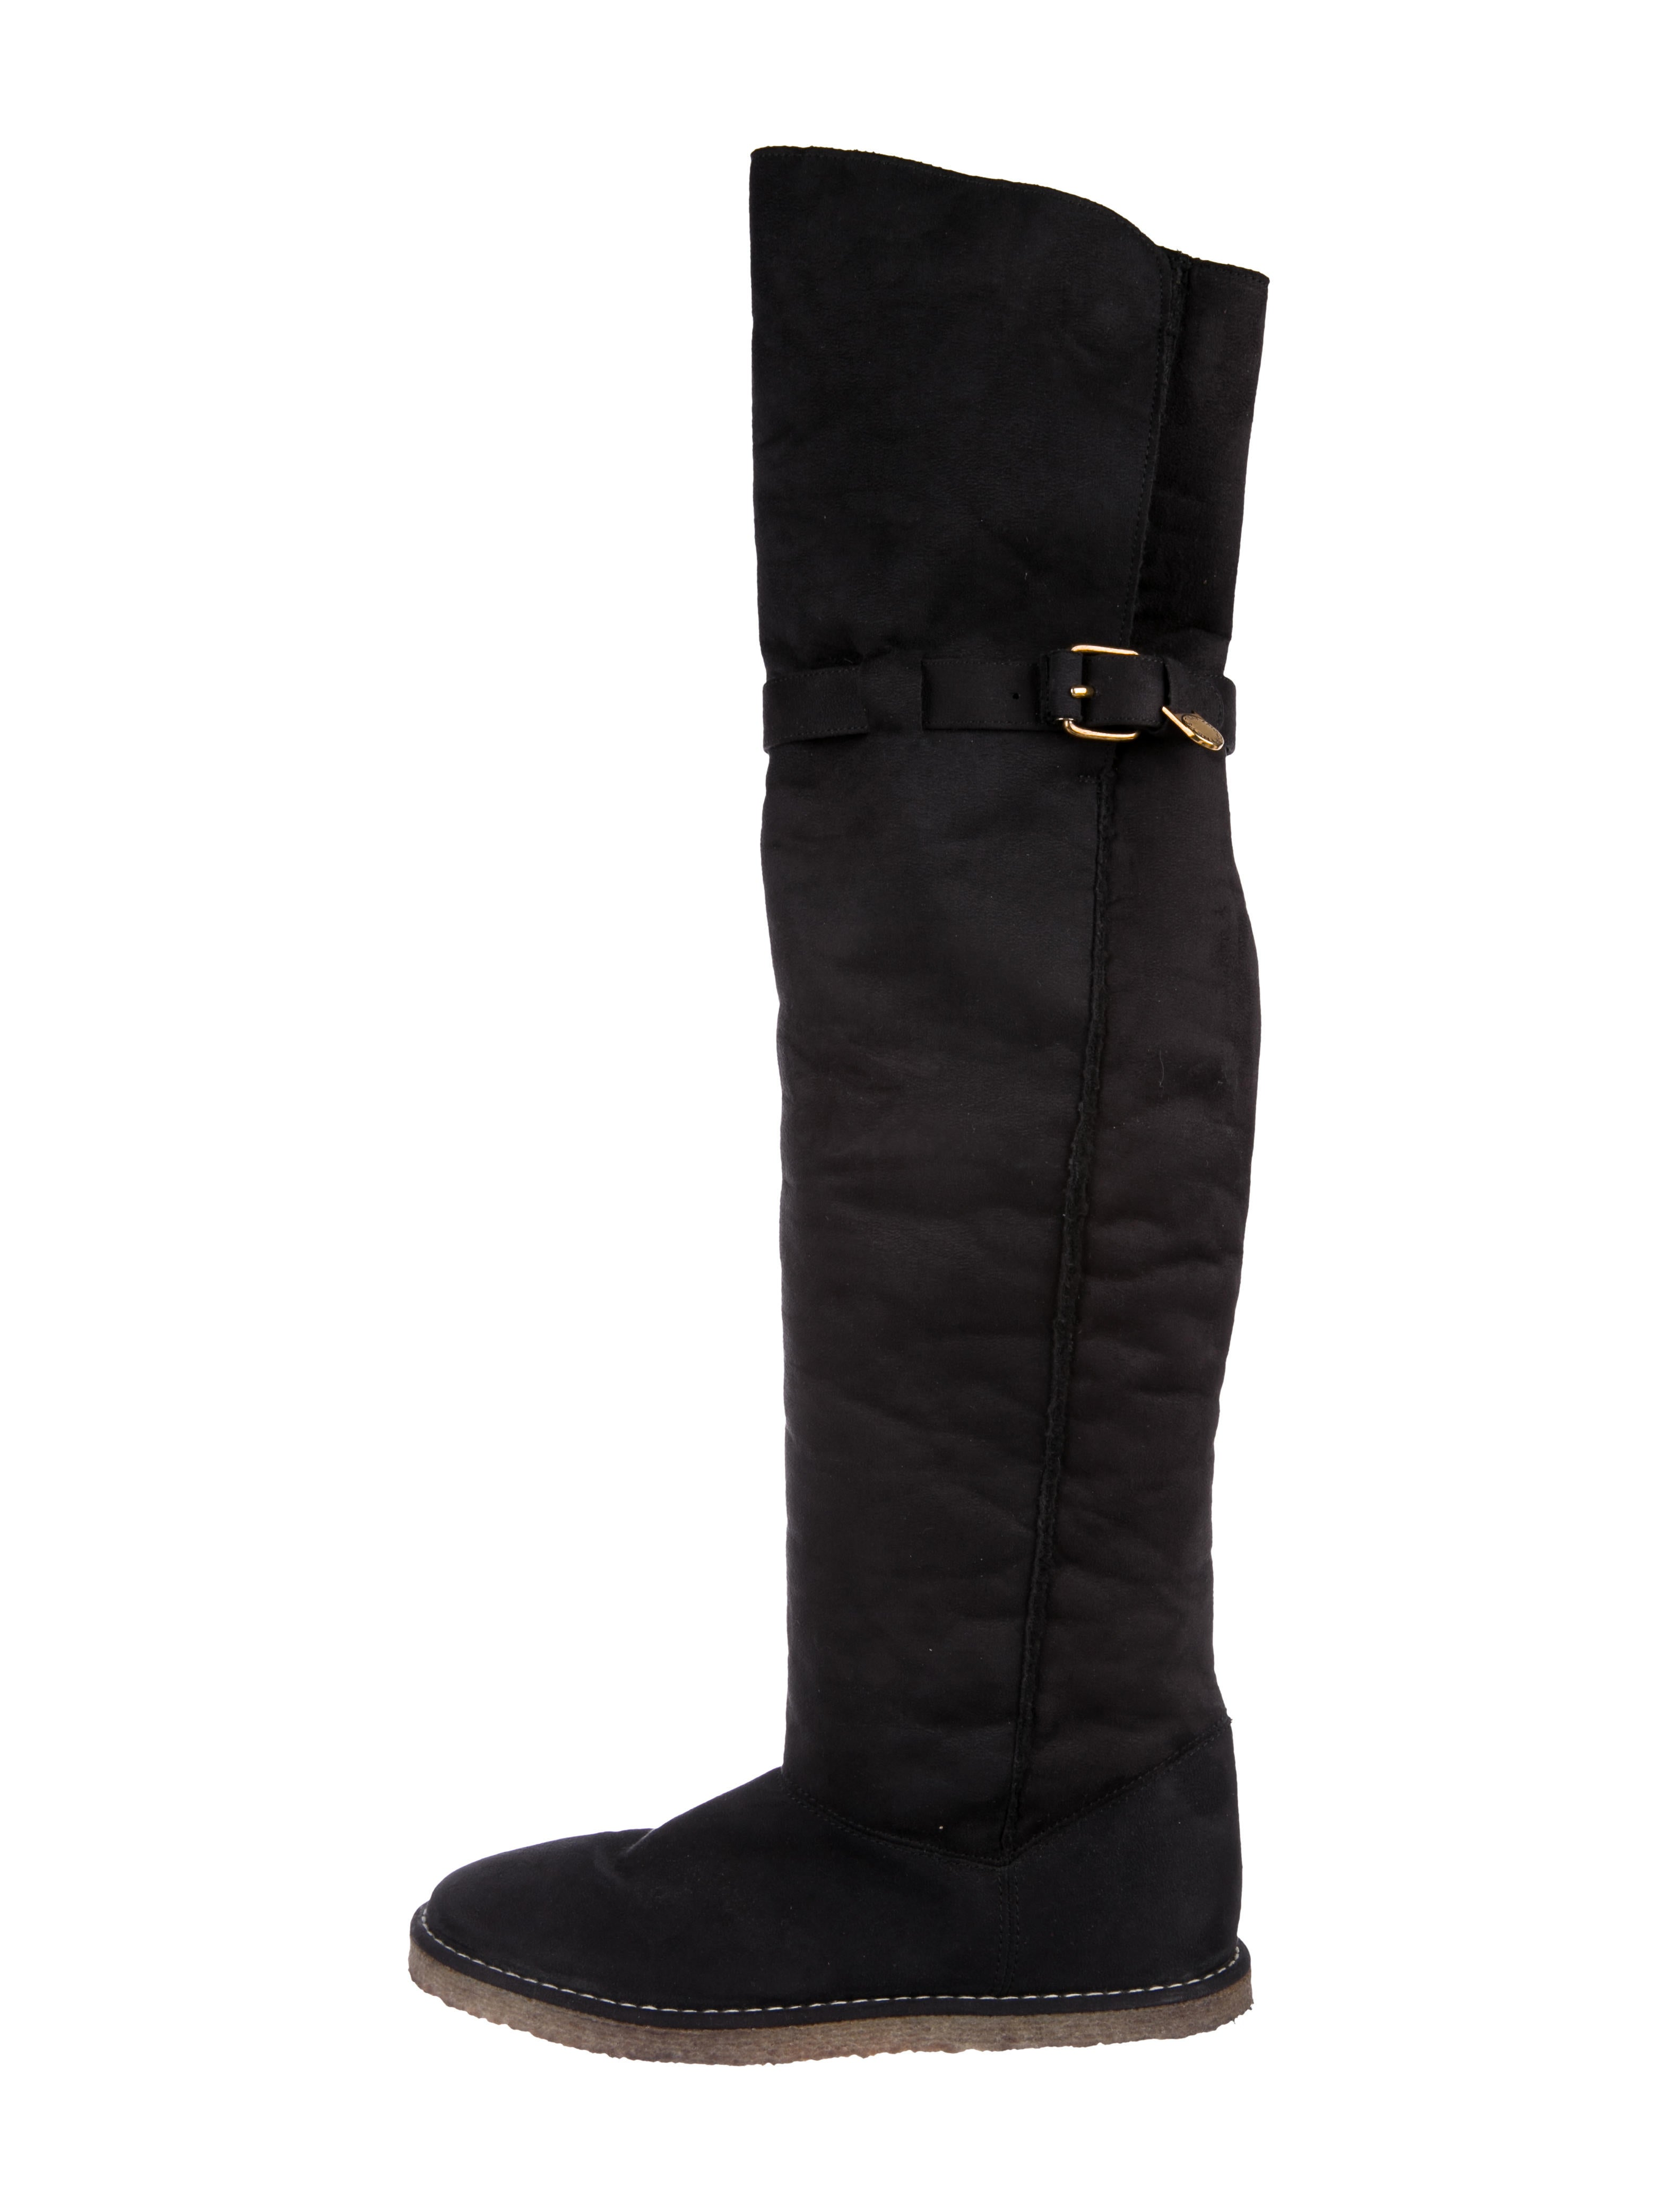 clearance store sale online Stella McCartney Fleece-Trimmed Knee Boots Cheapest with paypal outlet a56Lh